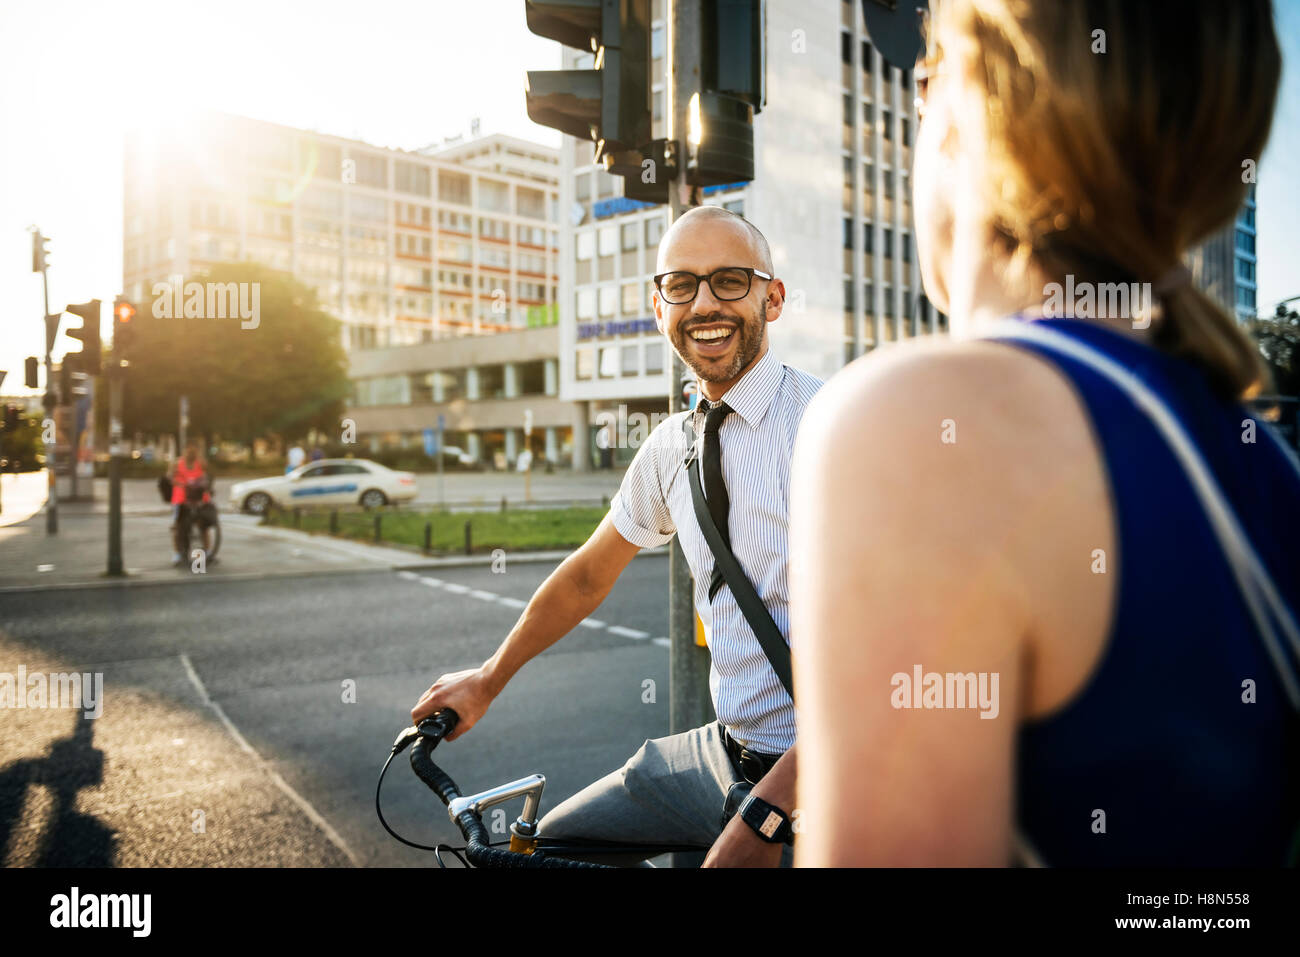 Man and woman in city, man smiling - Stock Image